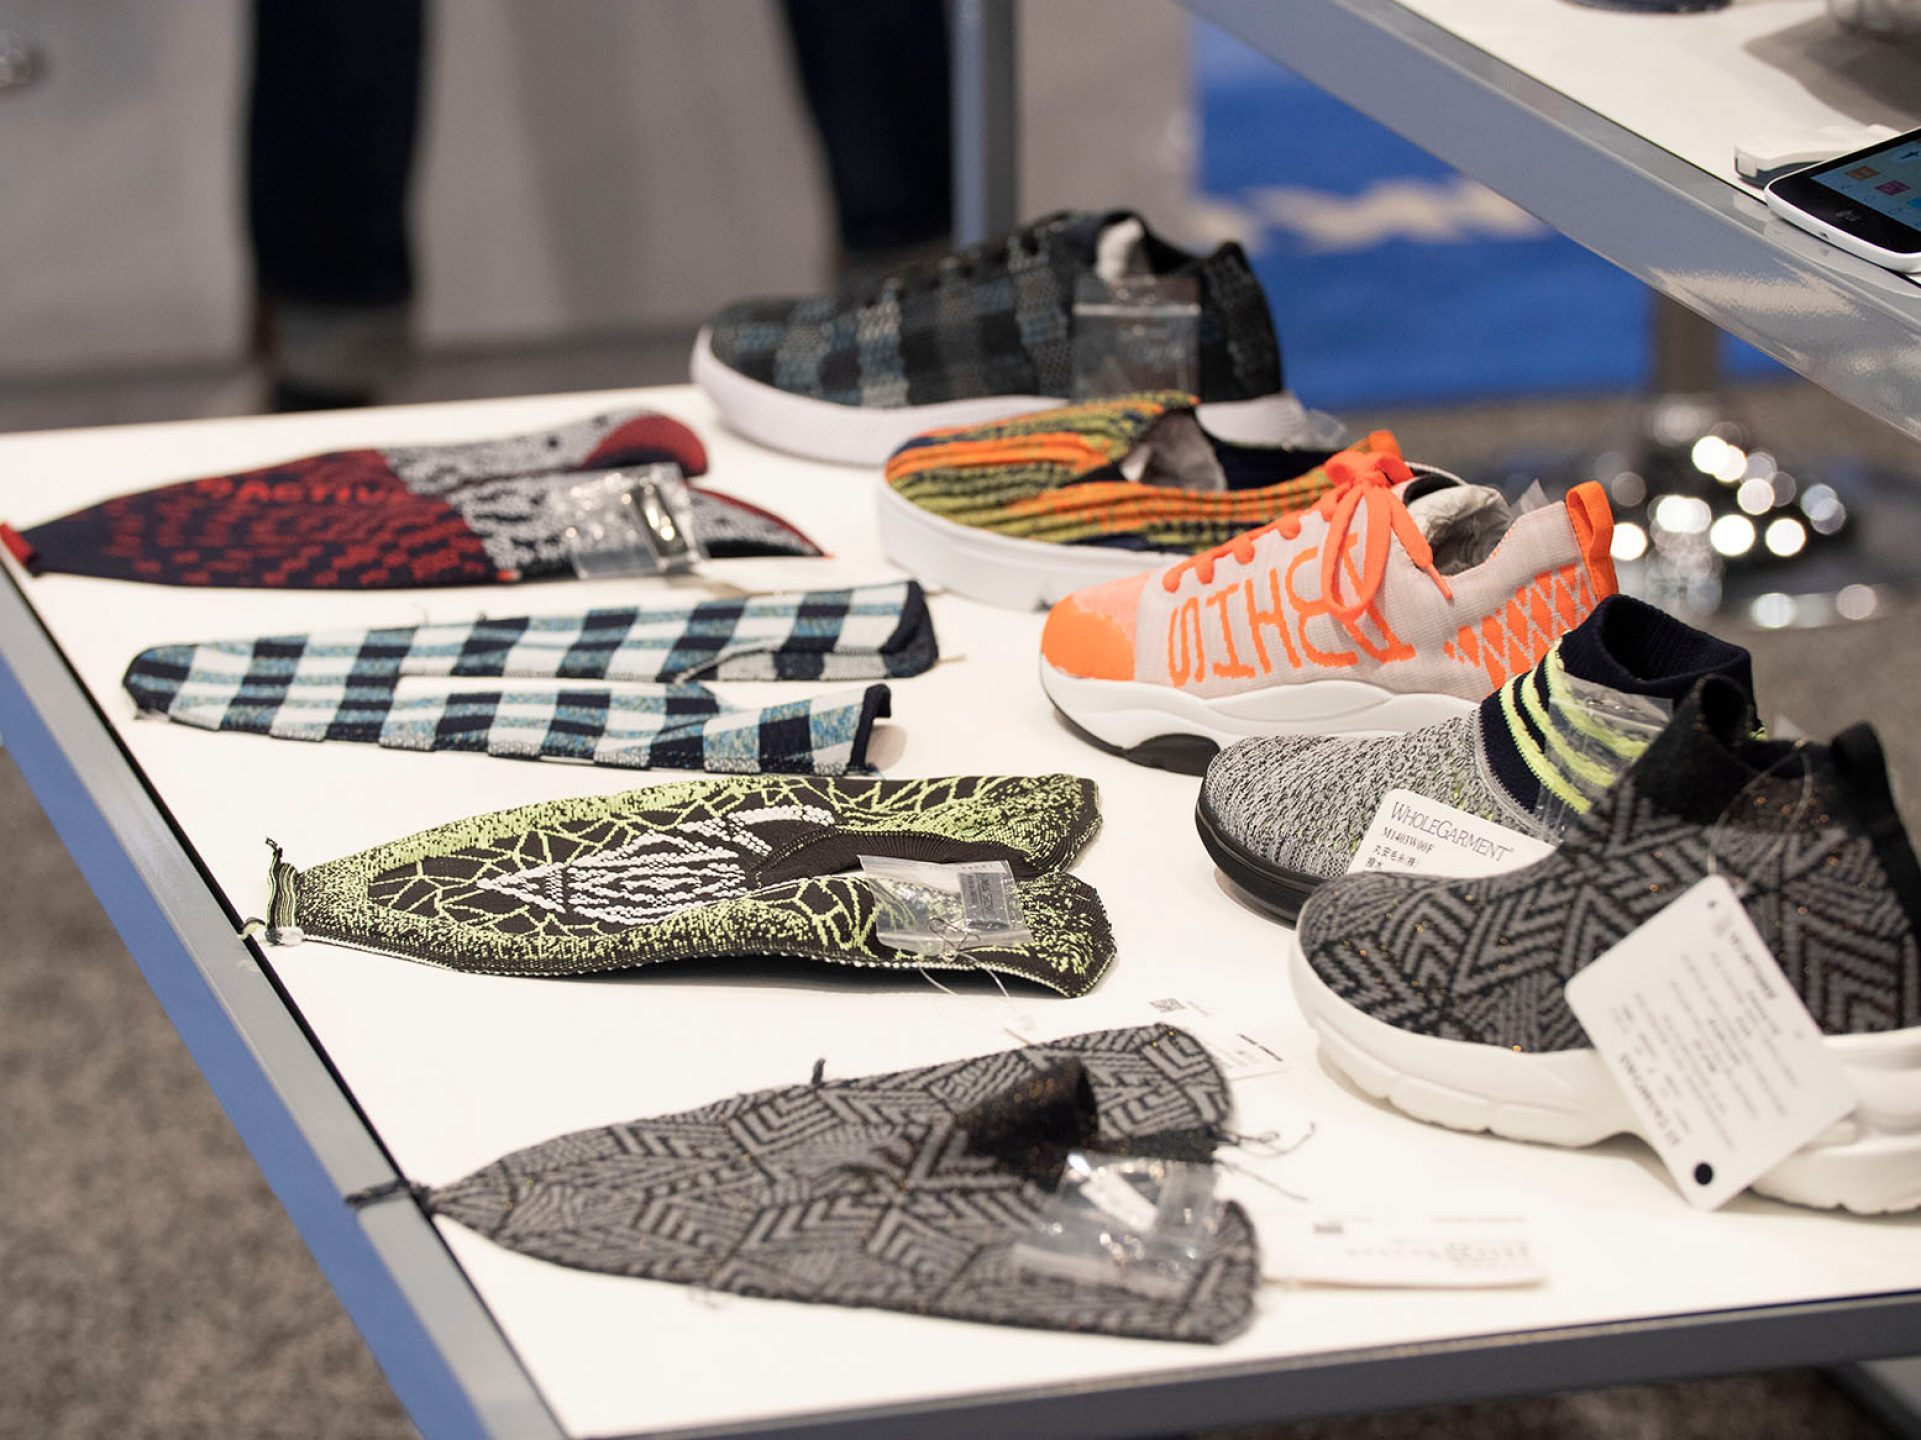 The event provided demonstrations of the latest products, equipment and technology. © Messe Frankfurt/ Techtextil North America